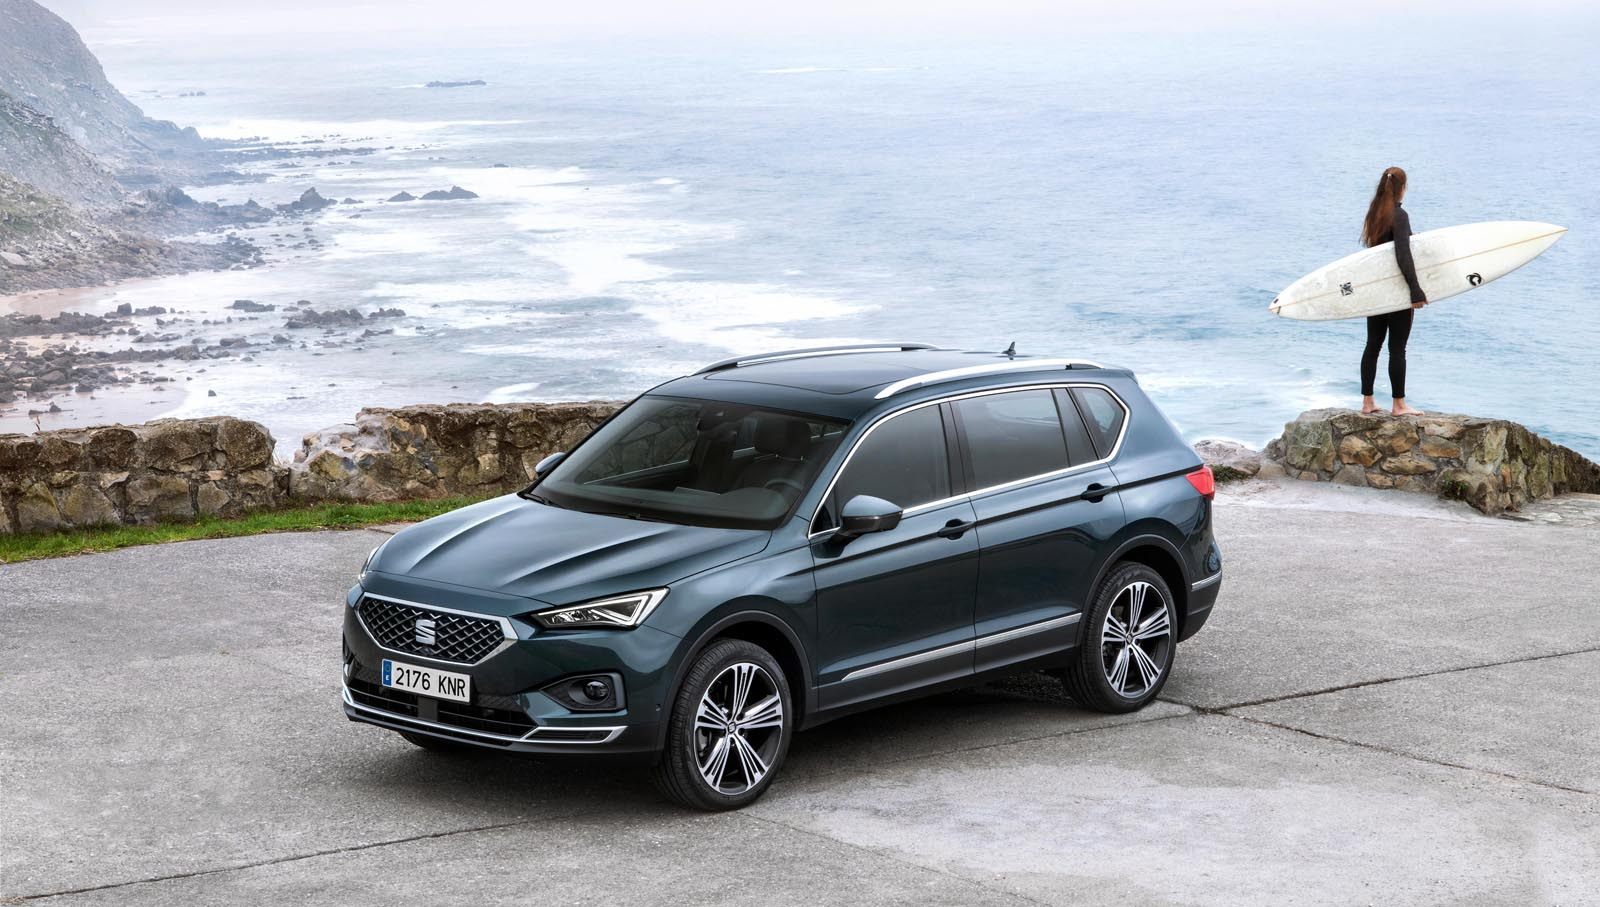 Photo of Με το Seat Tarraco στην Ισπανία [first drive]